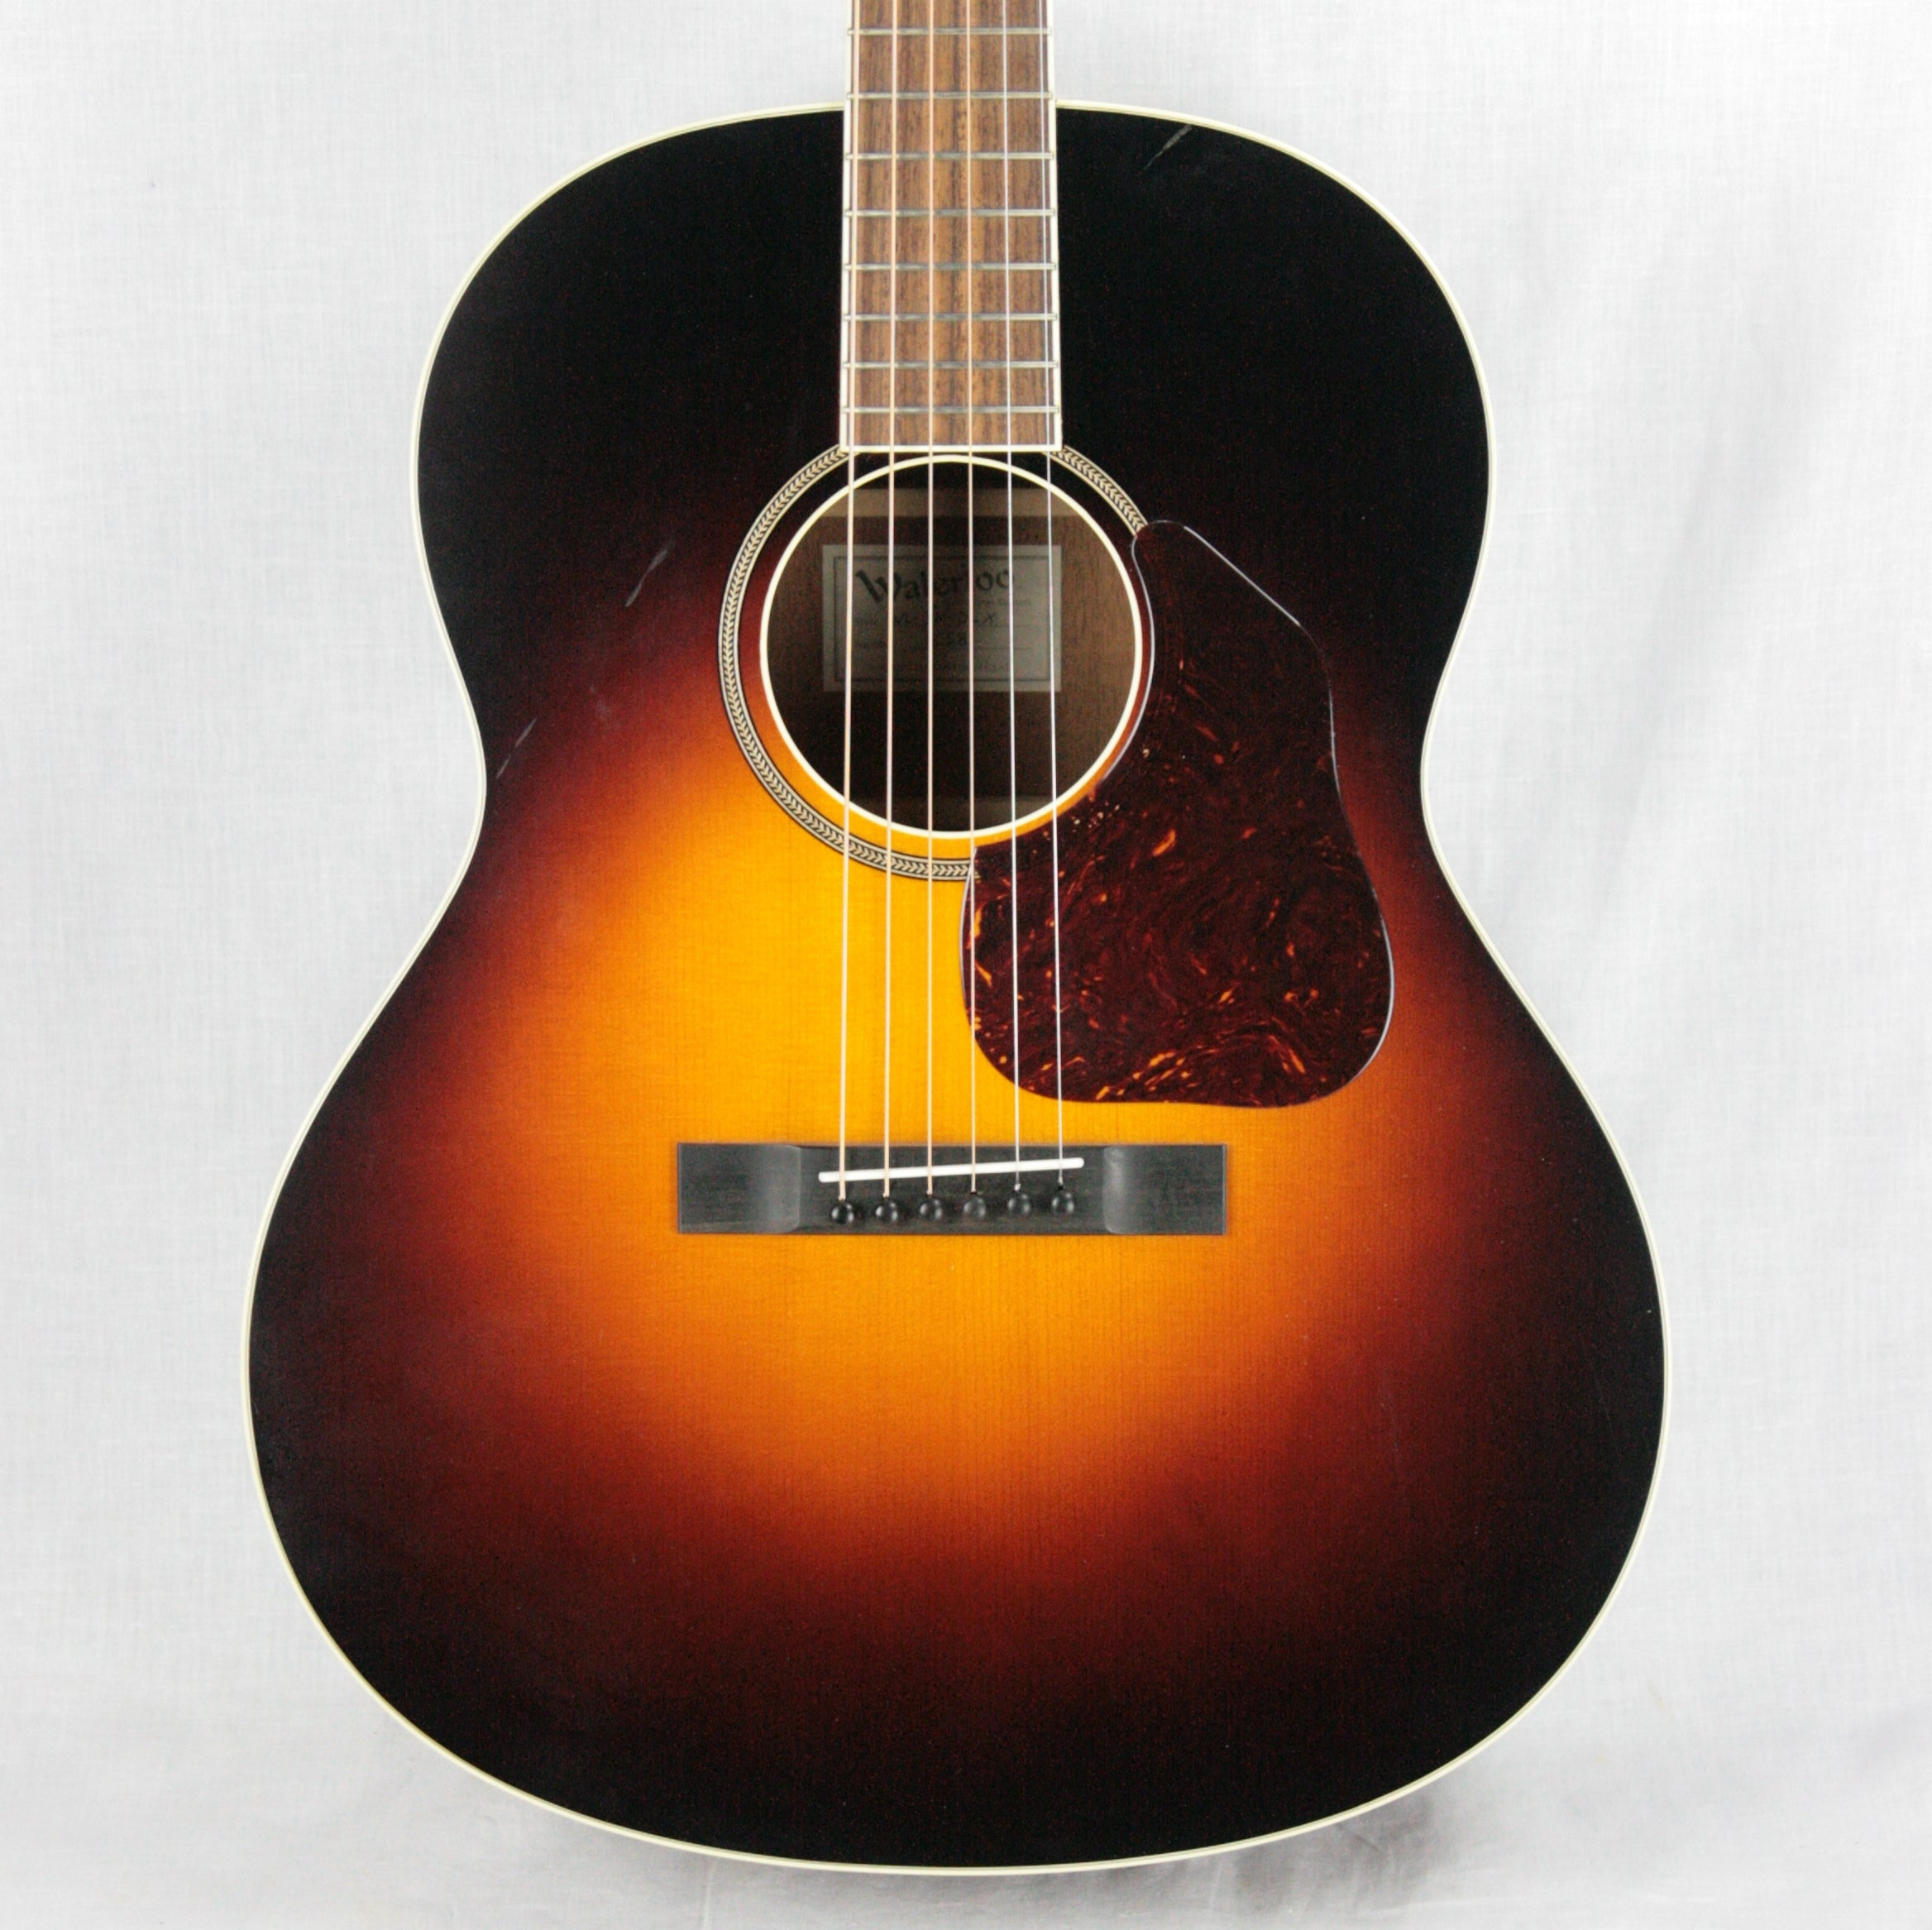 Waterloo Collings WL-JK Deluxe Jumbo King Acoustic Guitar! Sunburst Recording King type